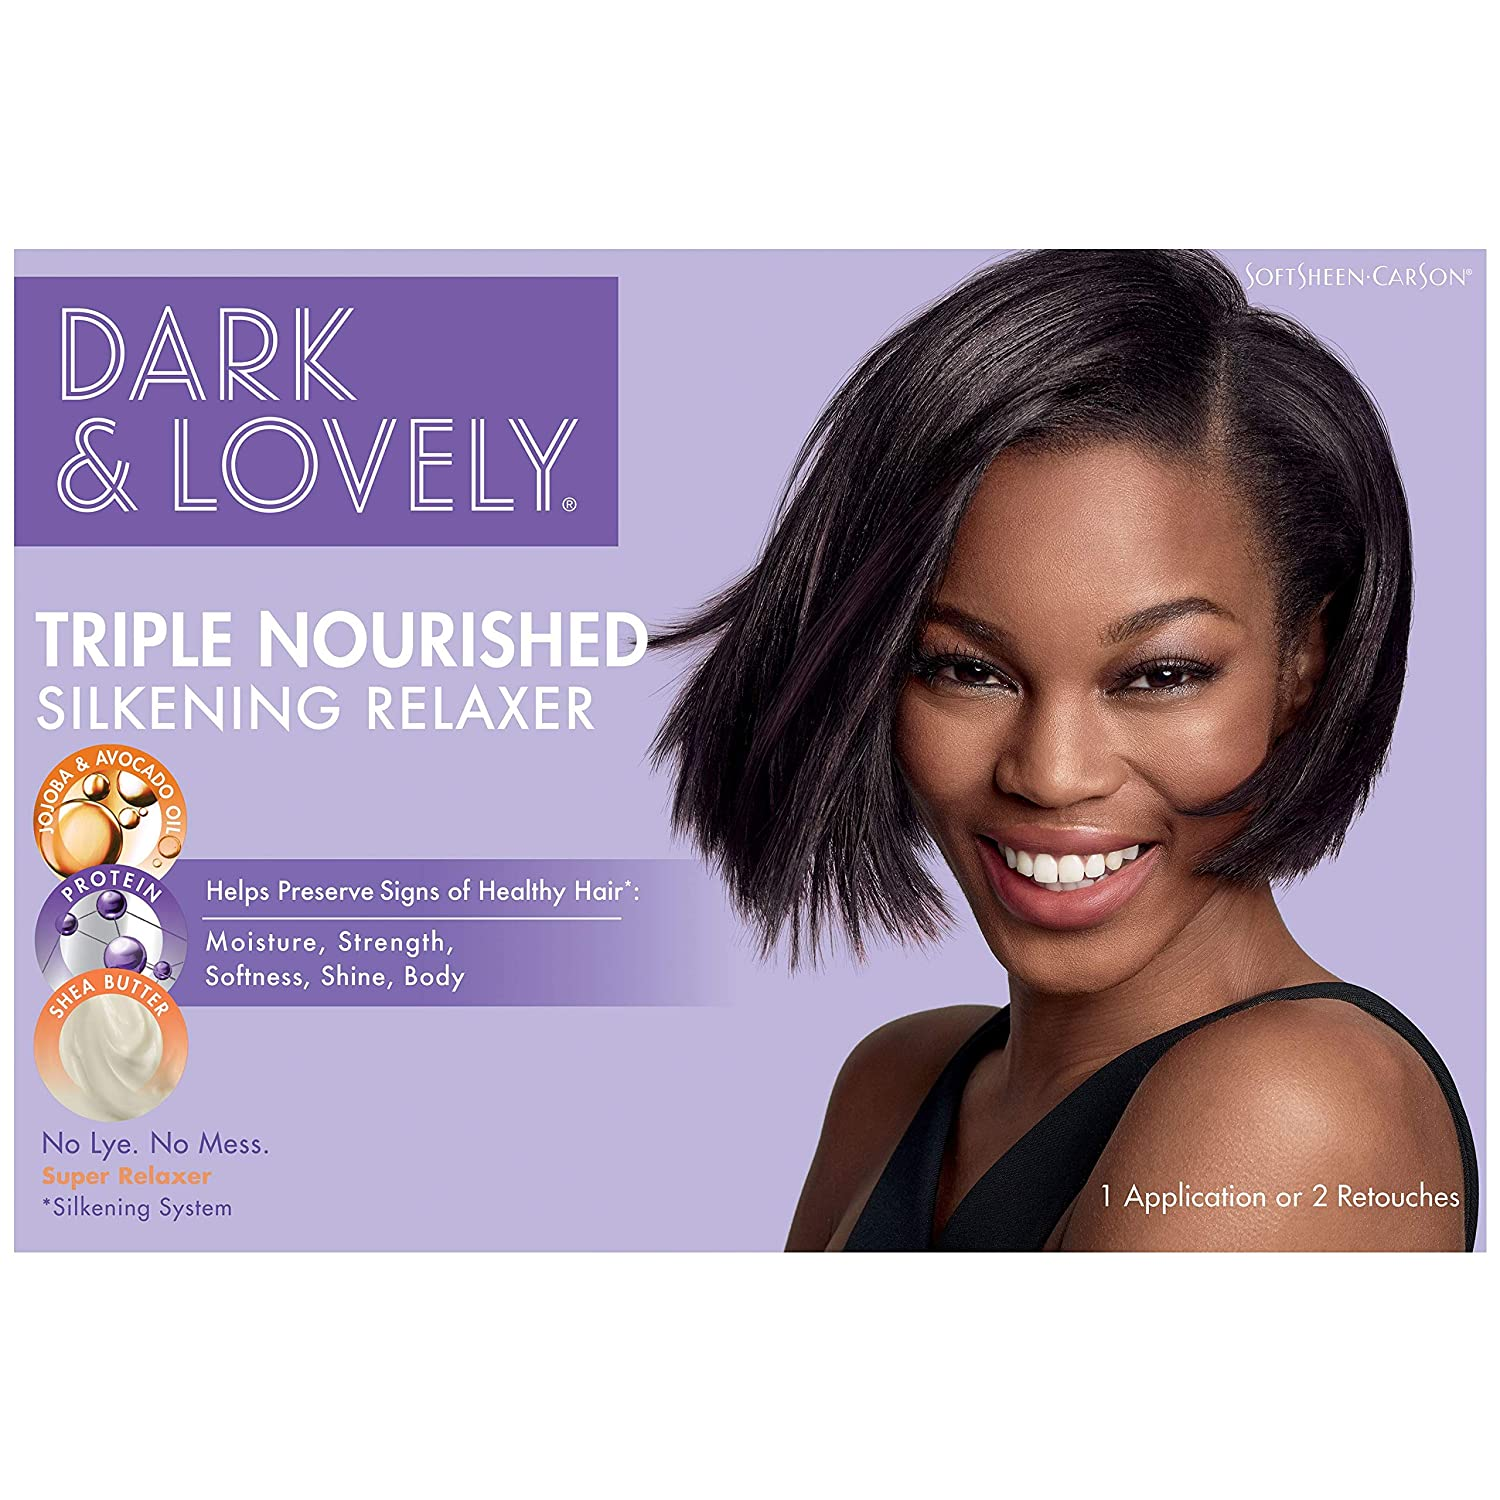 SoftSheen-Carson Dark and Lovely Healthy